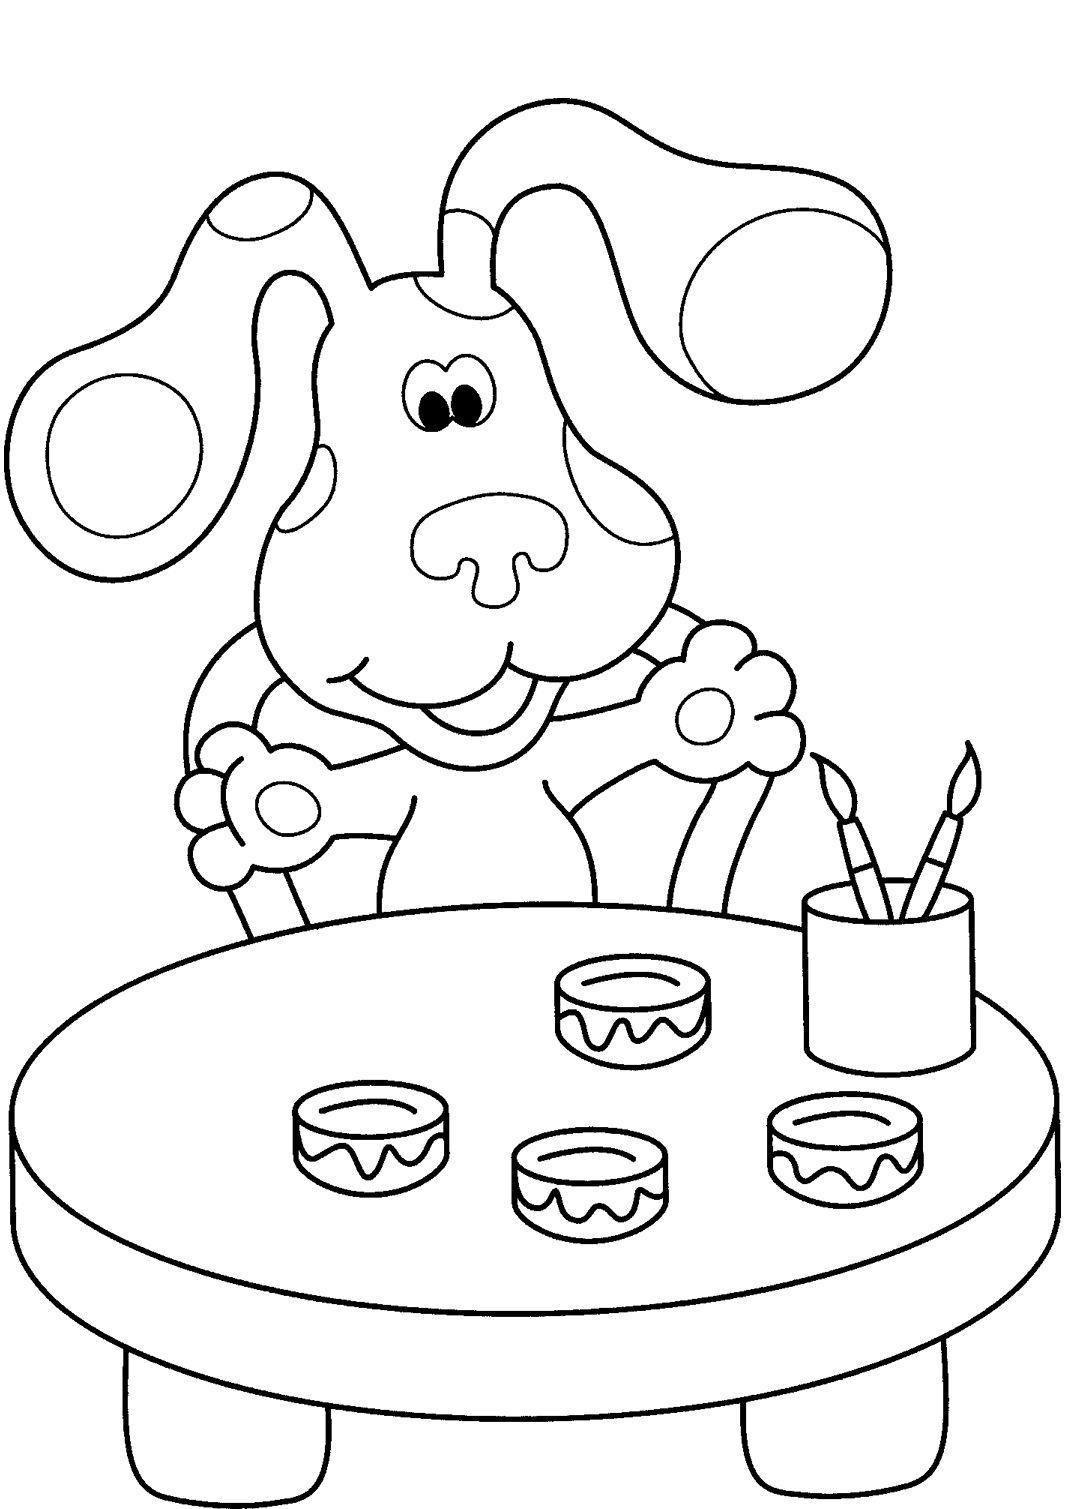 Adult Best Blue Clues Coloring Pages Images best 1000 images about blues clues on pinterest learn more at bestcoloringpagesforkids com gallery images